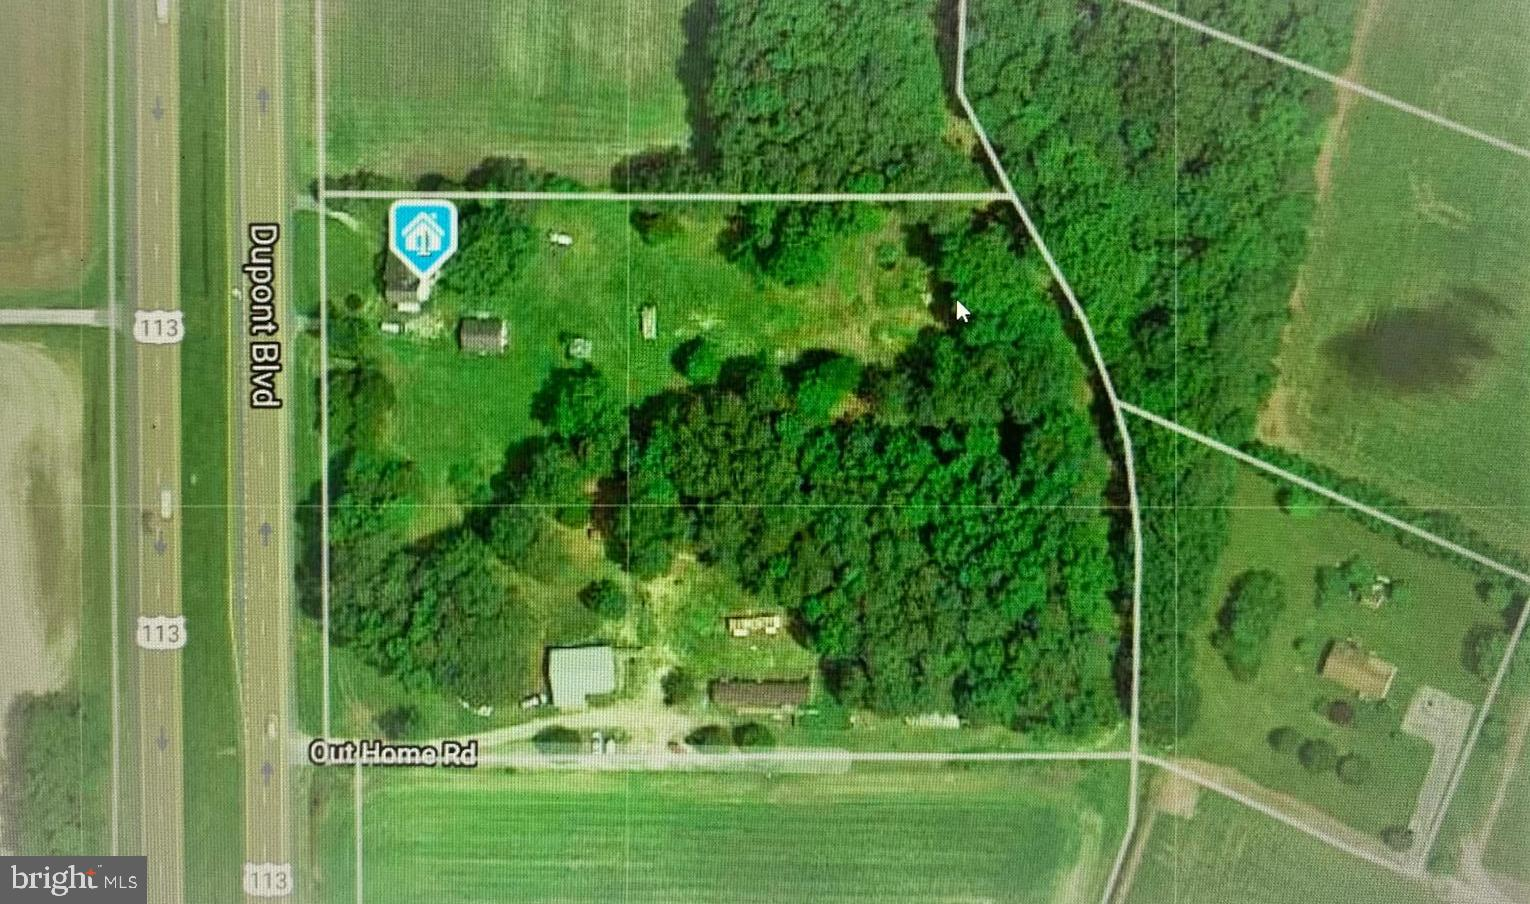 **Investors and visionaries alert!   This property is located on 5.32+/-  acres with 400+ feet of hwy frontage in Ellendale.  A large pole barn offers a full kitchen and bath. Additionally, it boasts an indoor swim spa all with handicap accessibility. The mature trees and secluded portion of the lot are perfect for multiple uses. This property is a diamond in the rough and can be subdivided. The original buildings on the property are in need of major repair and/or demo. This property is being sold as is and all inspections will be for information purposes only.   For your safety:  Enter the main home at your own risk and it is not advised to enter the trailer.